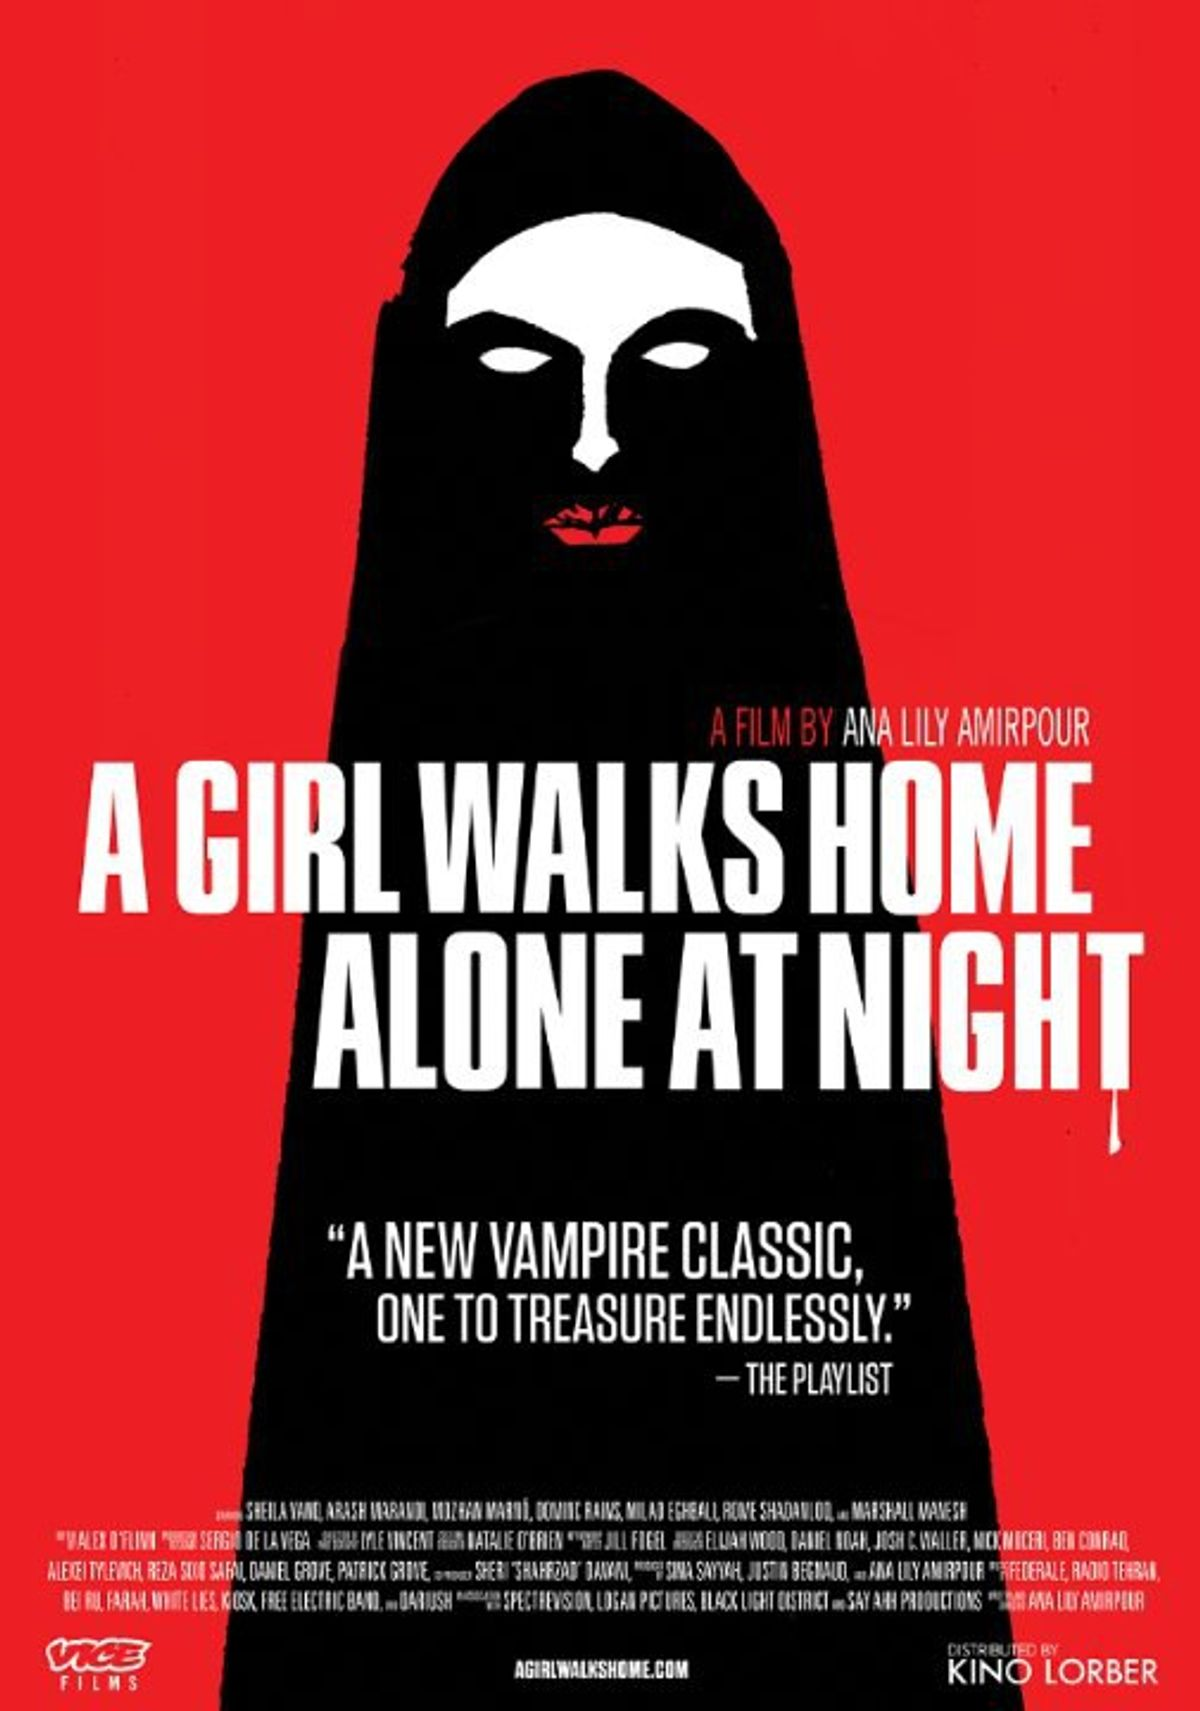 Let's Talk Film! A Girl Walks Home Alone At Night (2014)